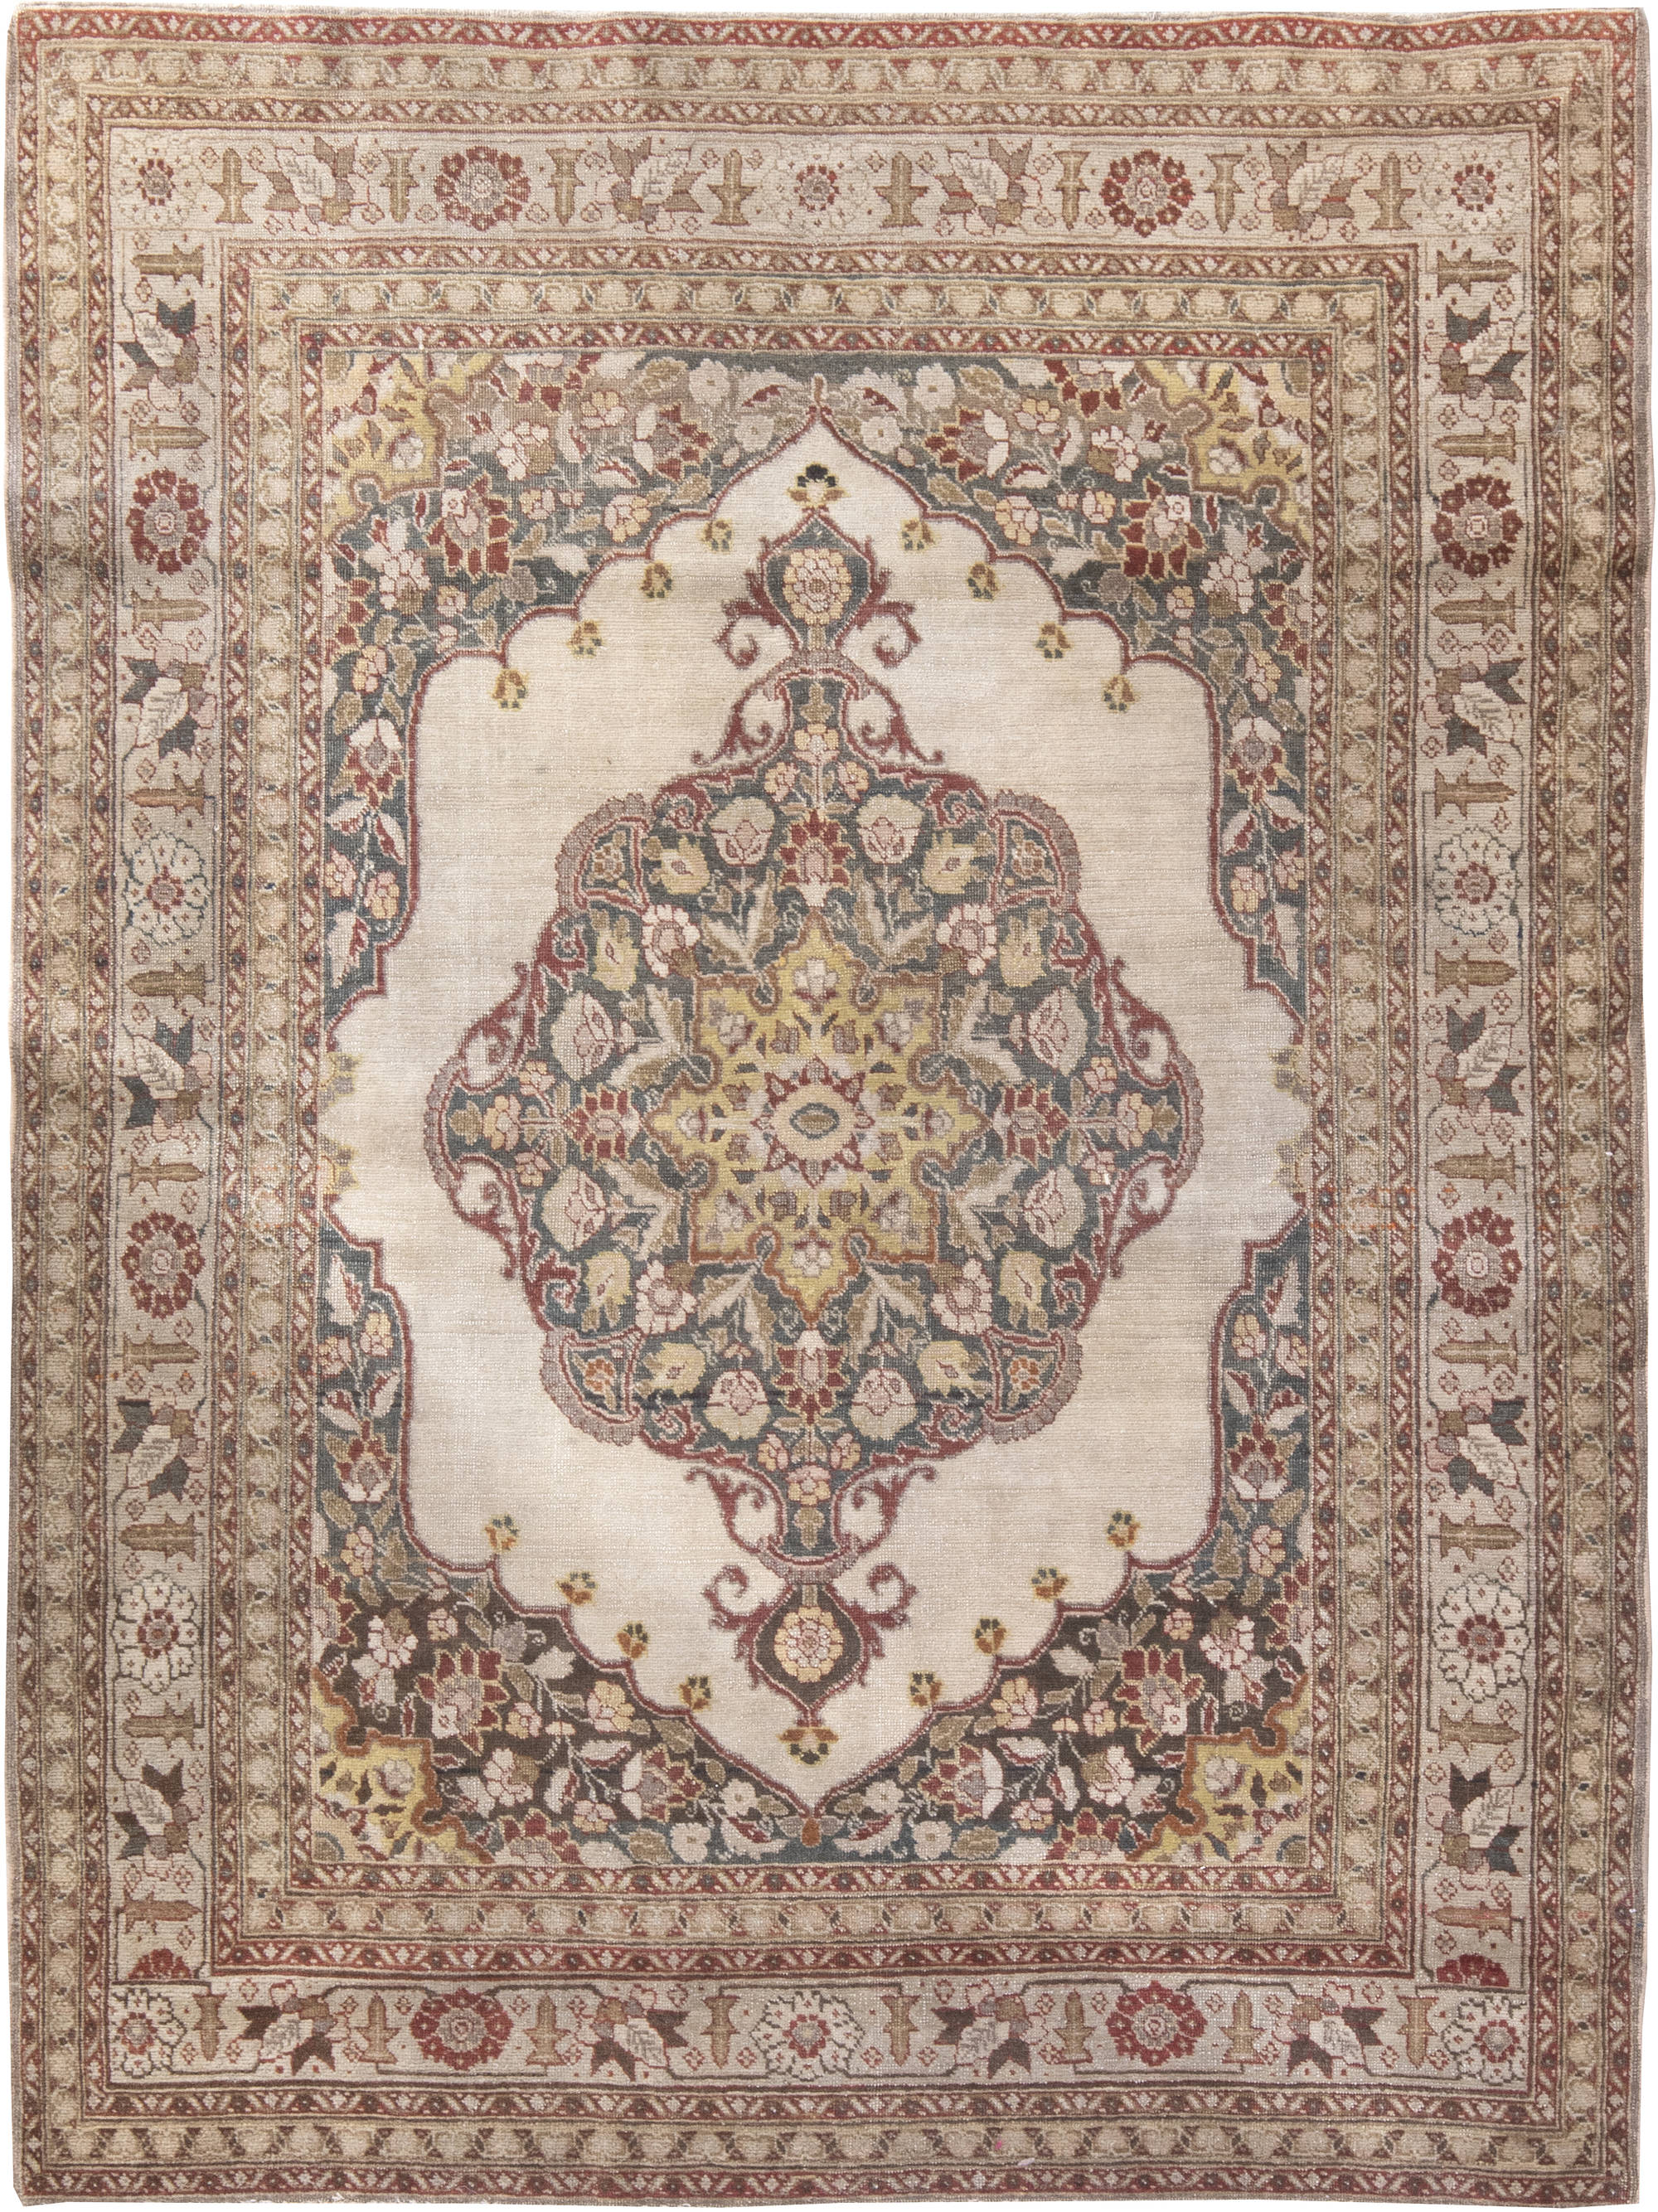 rug rugs persian silk sale antique all yazd authentic oriental for handmade